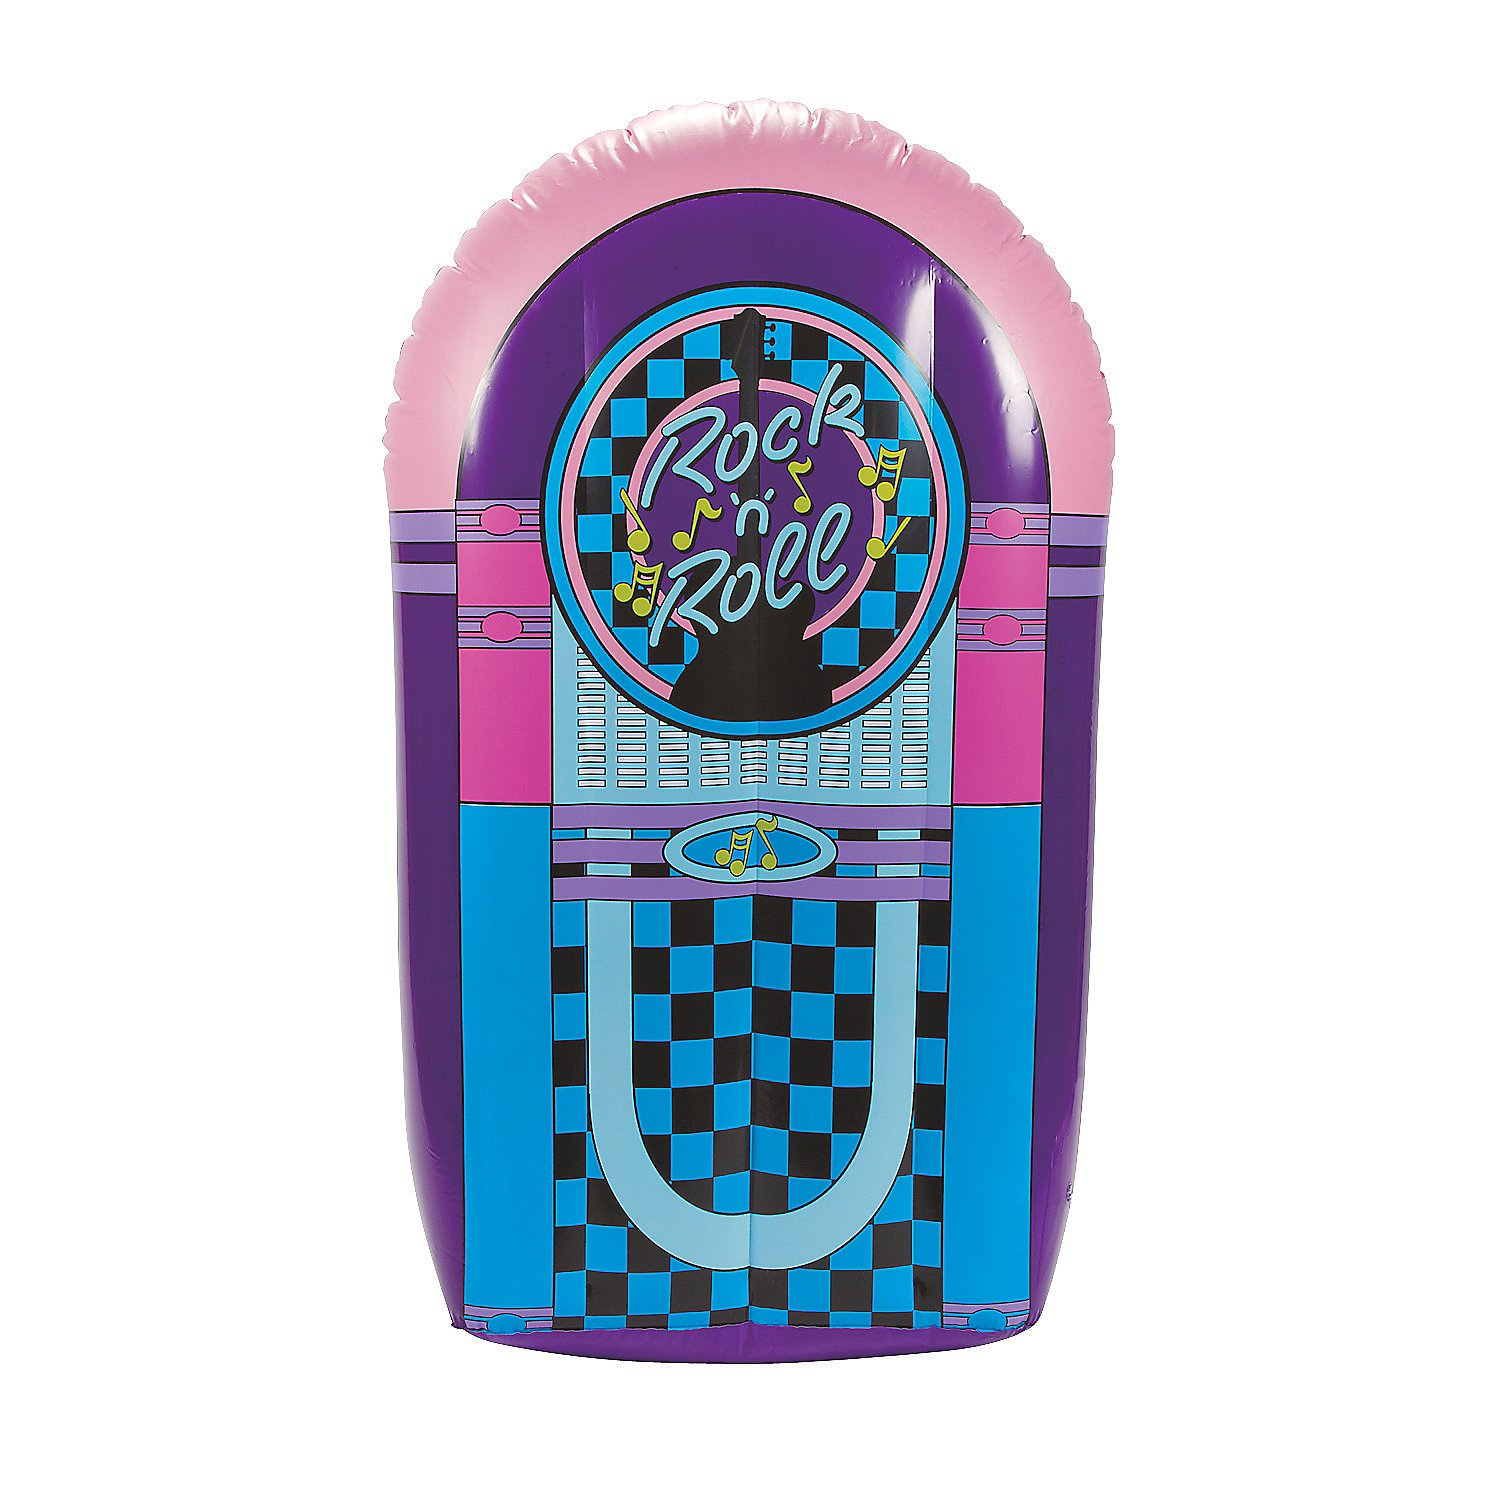 Fun Express - Juke Box Inflate for Party - Toys - Inflates - Inflatable Decor - Party - 1 Piece by Fun Express